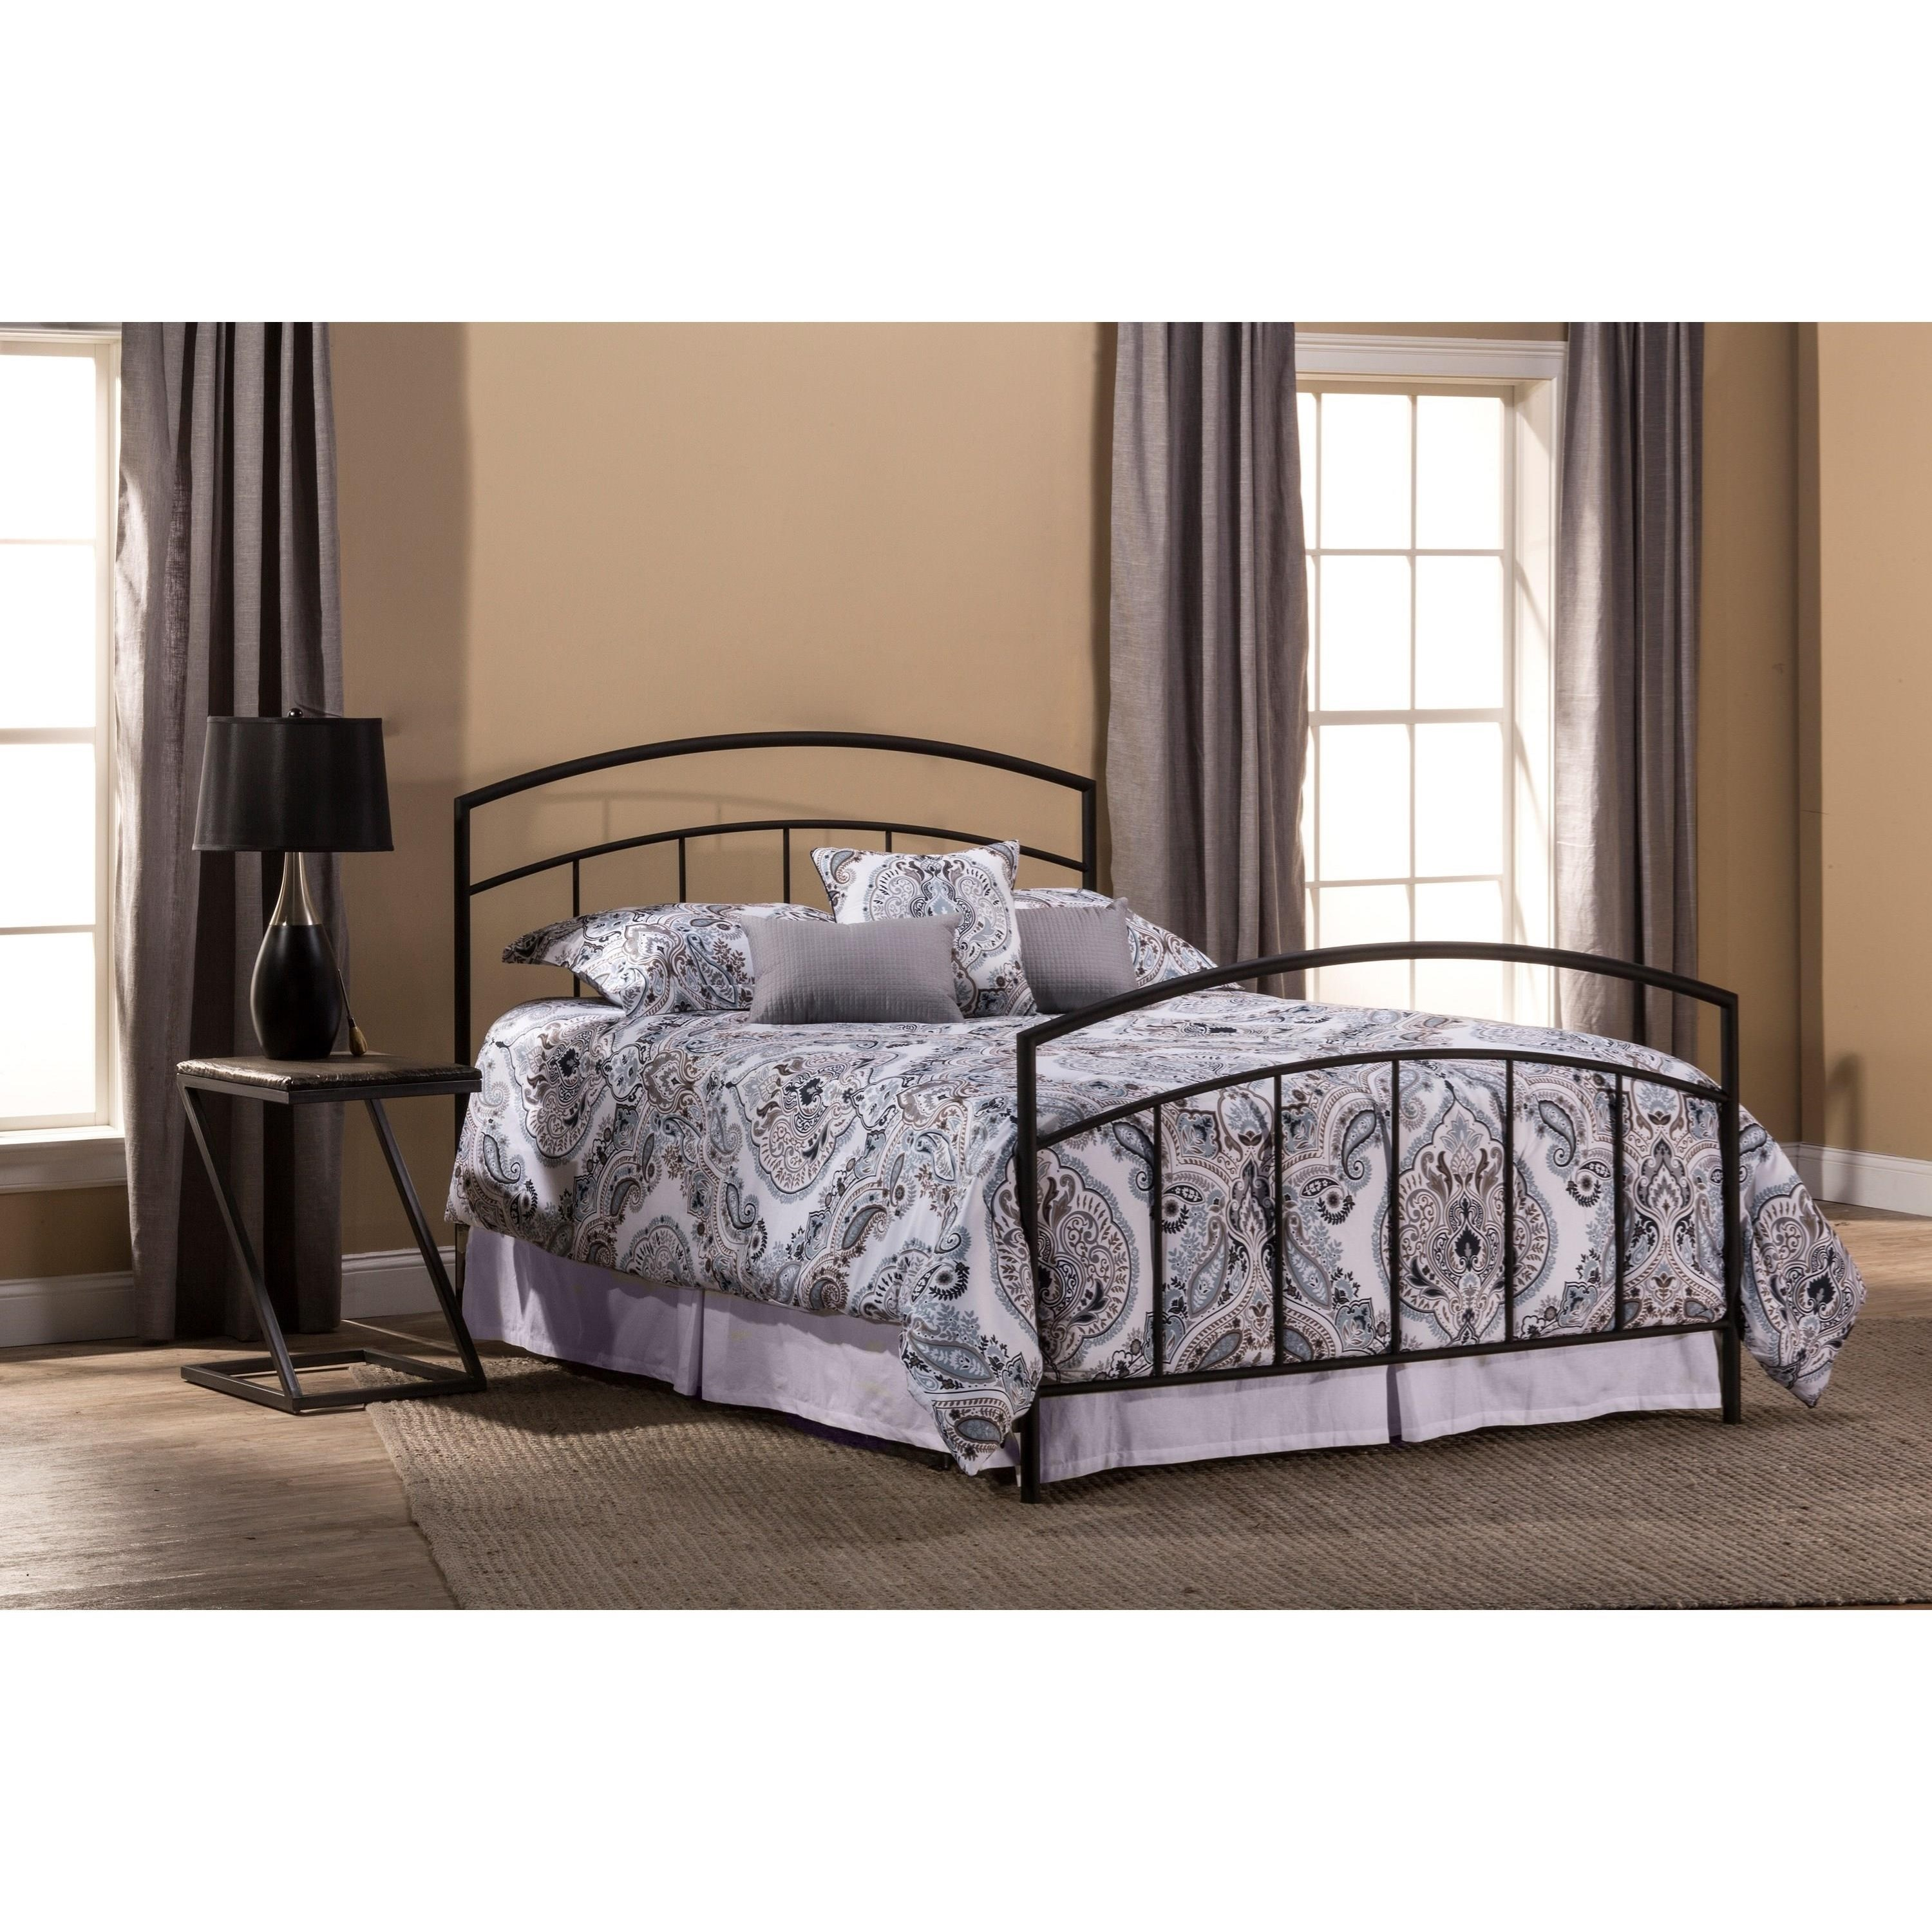 Queen Bed Set with Rails